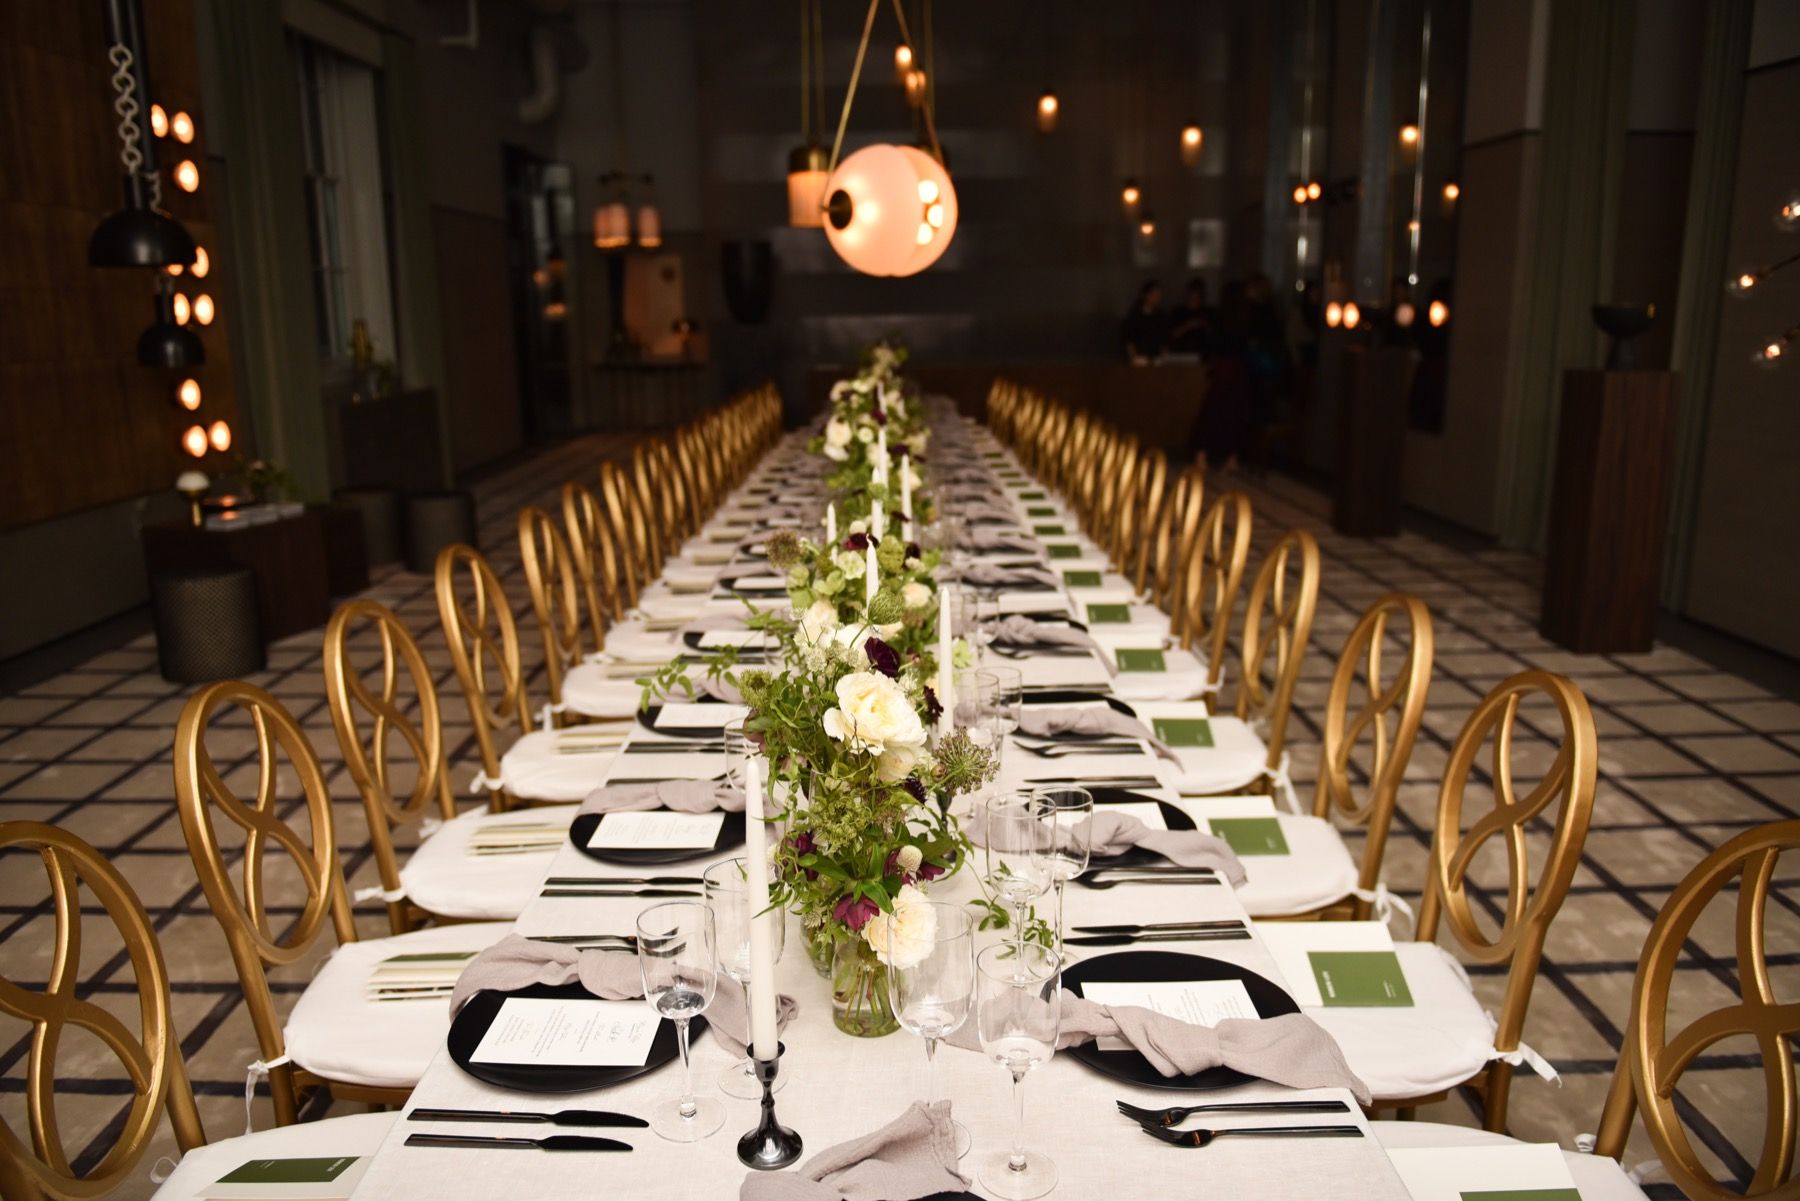 Mimi Brown Studio. Apparatus Dinner.  Mimi Brown Studio specializes in celebrations ranging from stunning weddings and private celebrations to international destination experiences and not for profit events. With over 10 years of experience the studio focuses on the age-old notions of hospitality, graciousness and generosity, and on creating experiences that share these qualities with your guests.